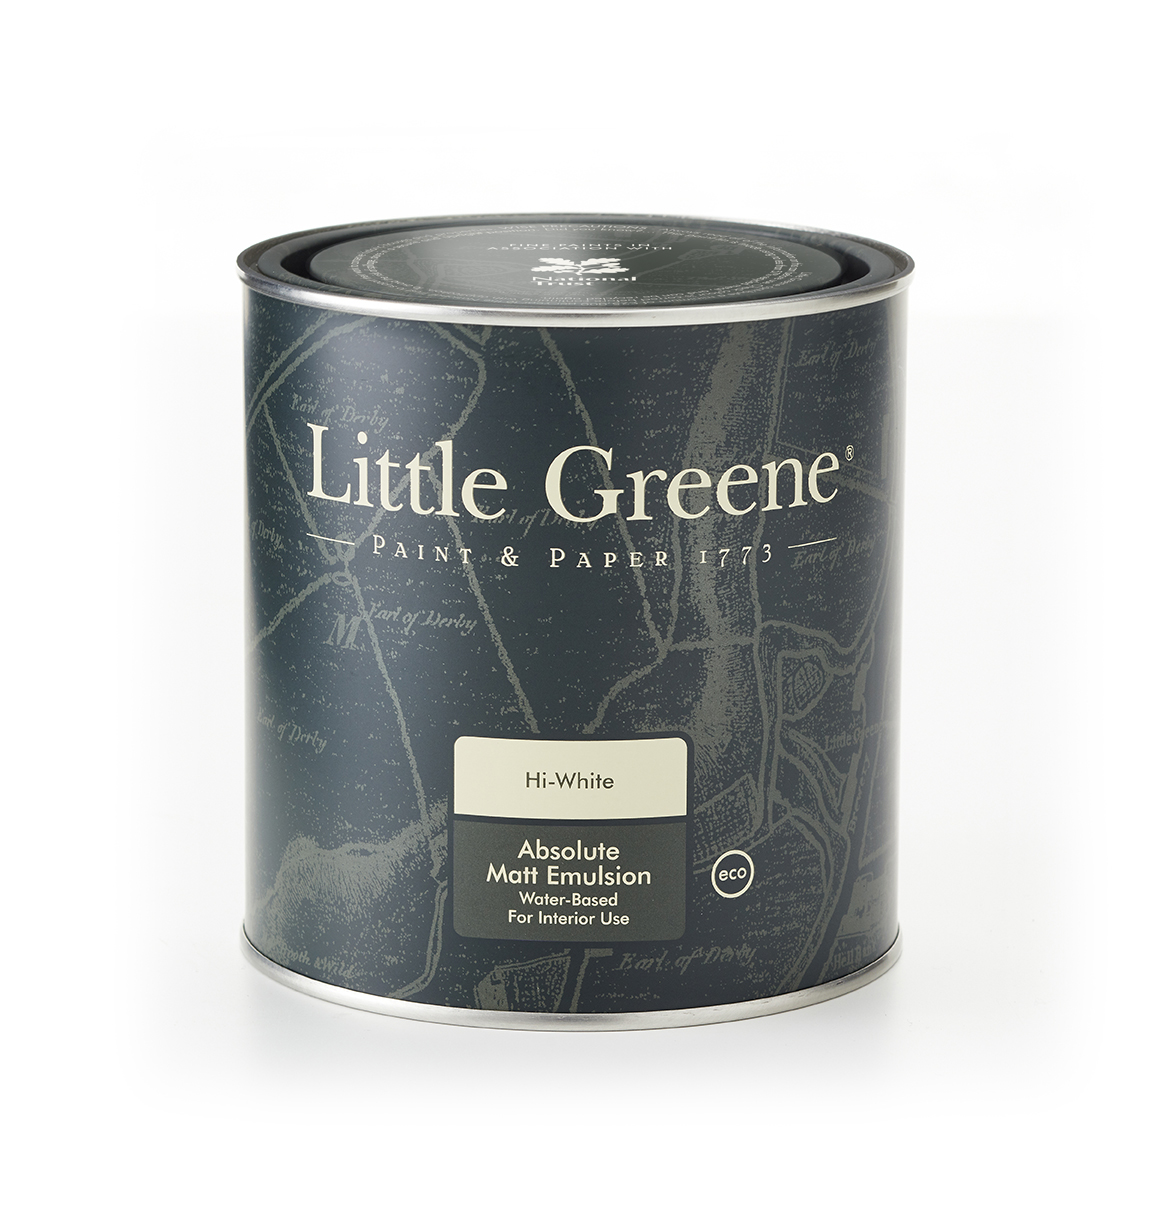 Produktkategorie Little Greene